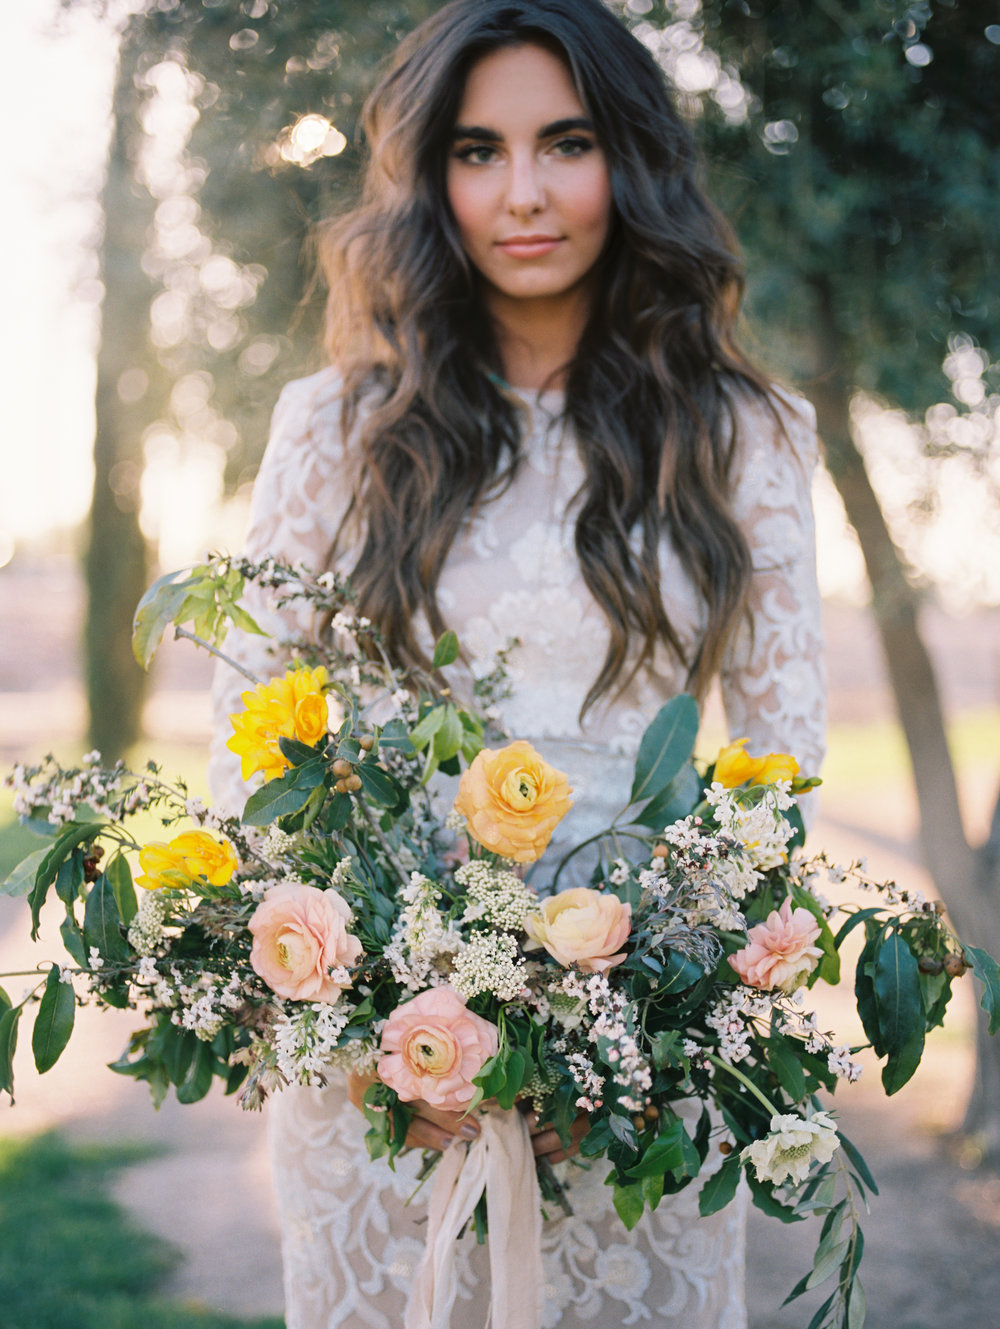 Olive Mill Wedding Inspiration - Ranunculus and Greenery Bouquet